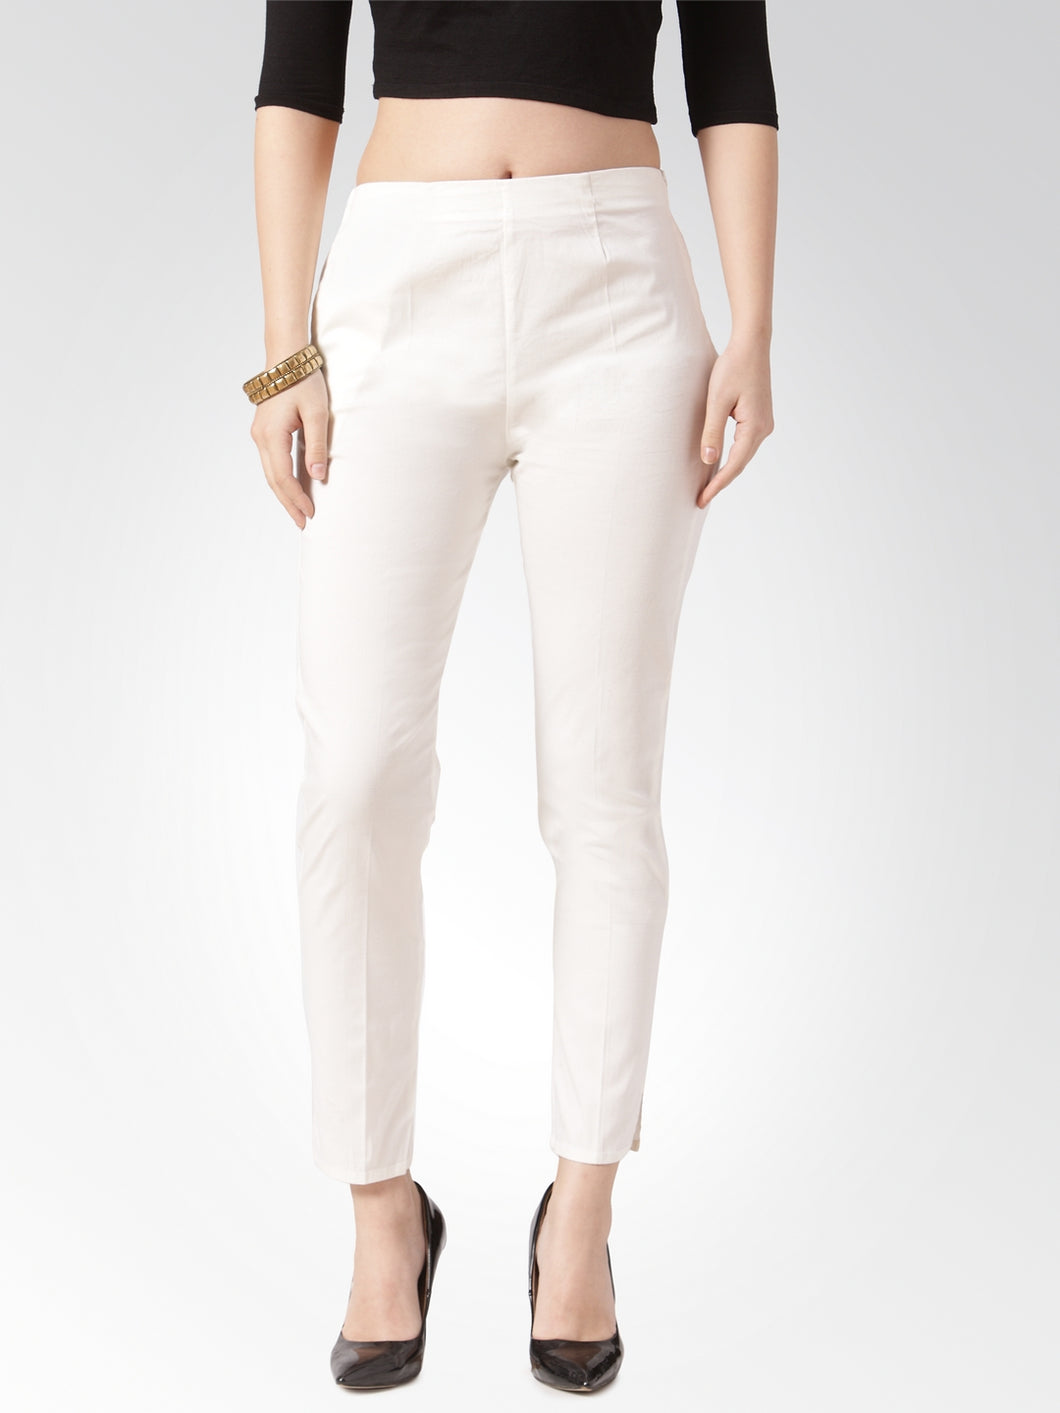 Jompers Women Off-White Smart Slim Fit Solid Regular Trousers